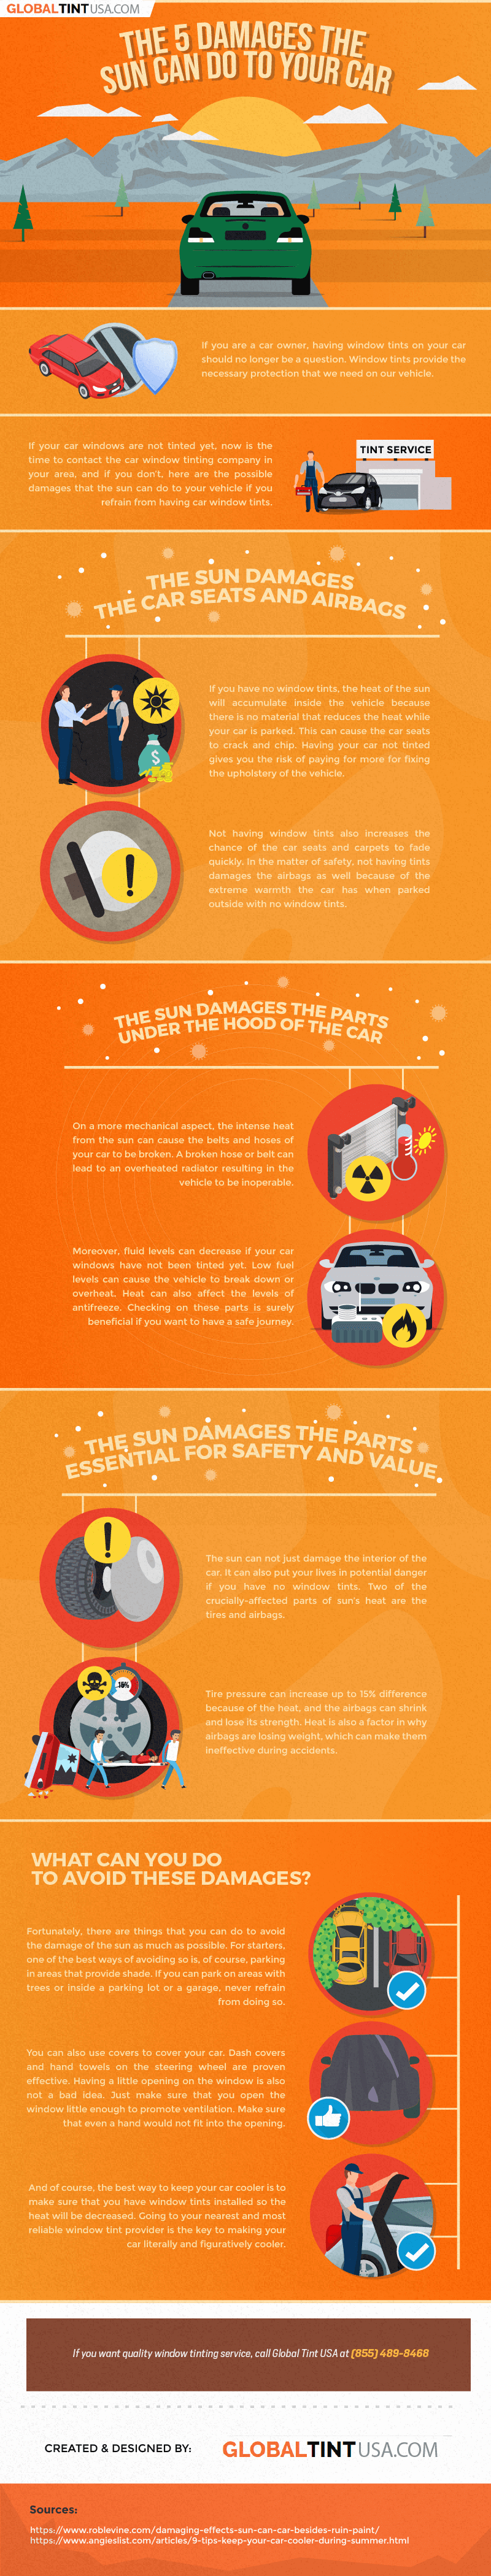 The 5 Damages That The Sun Can Do To Your Car